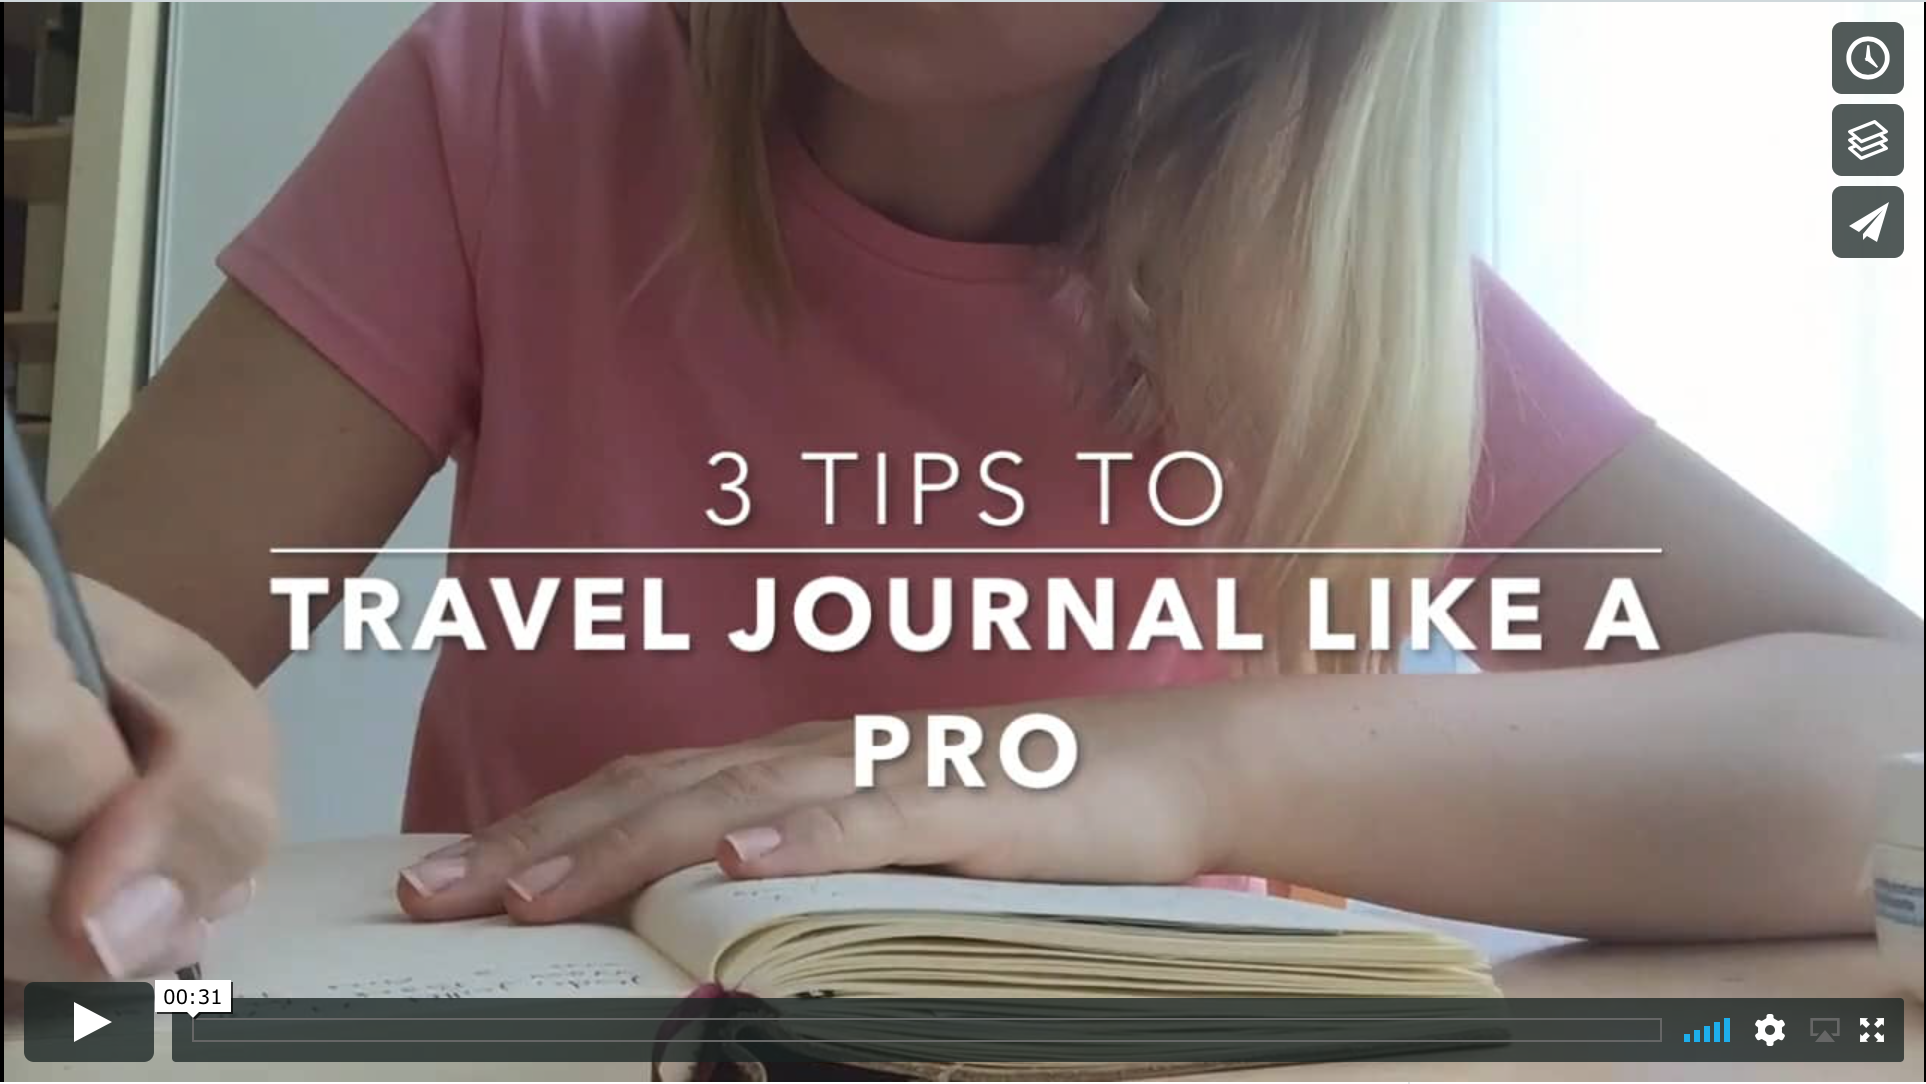 3 Tips to Travel Journal Like a Pro